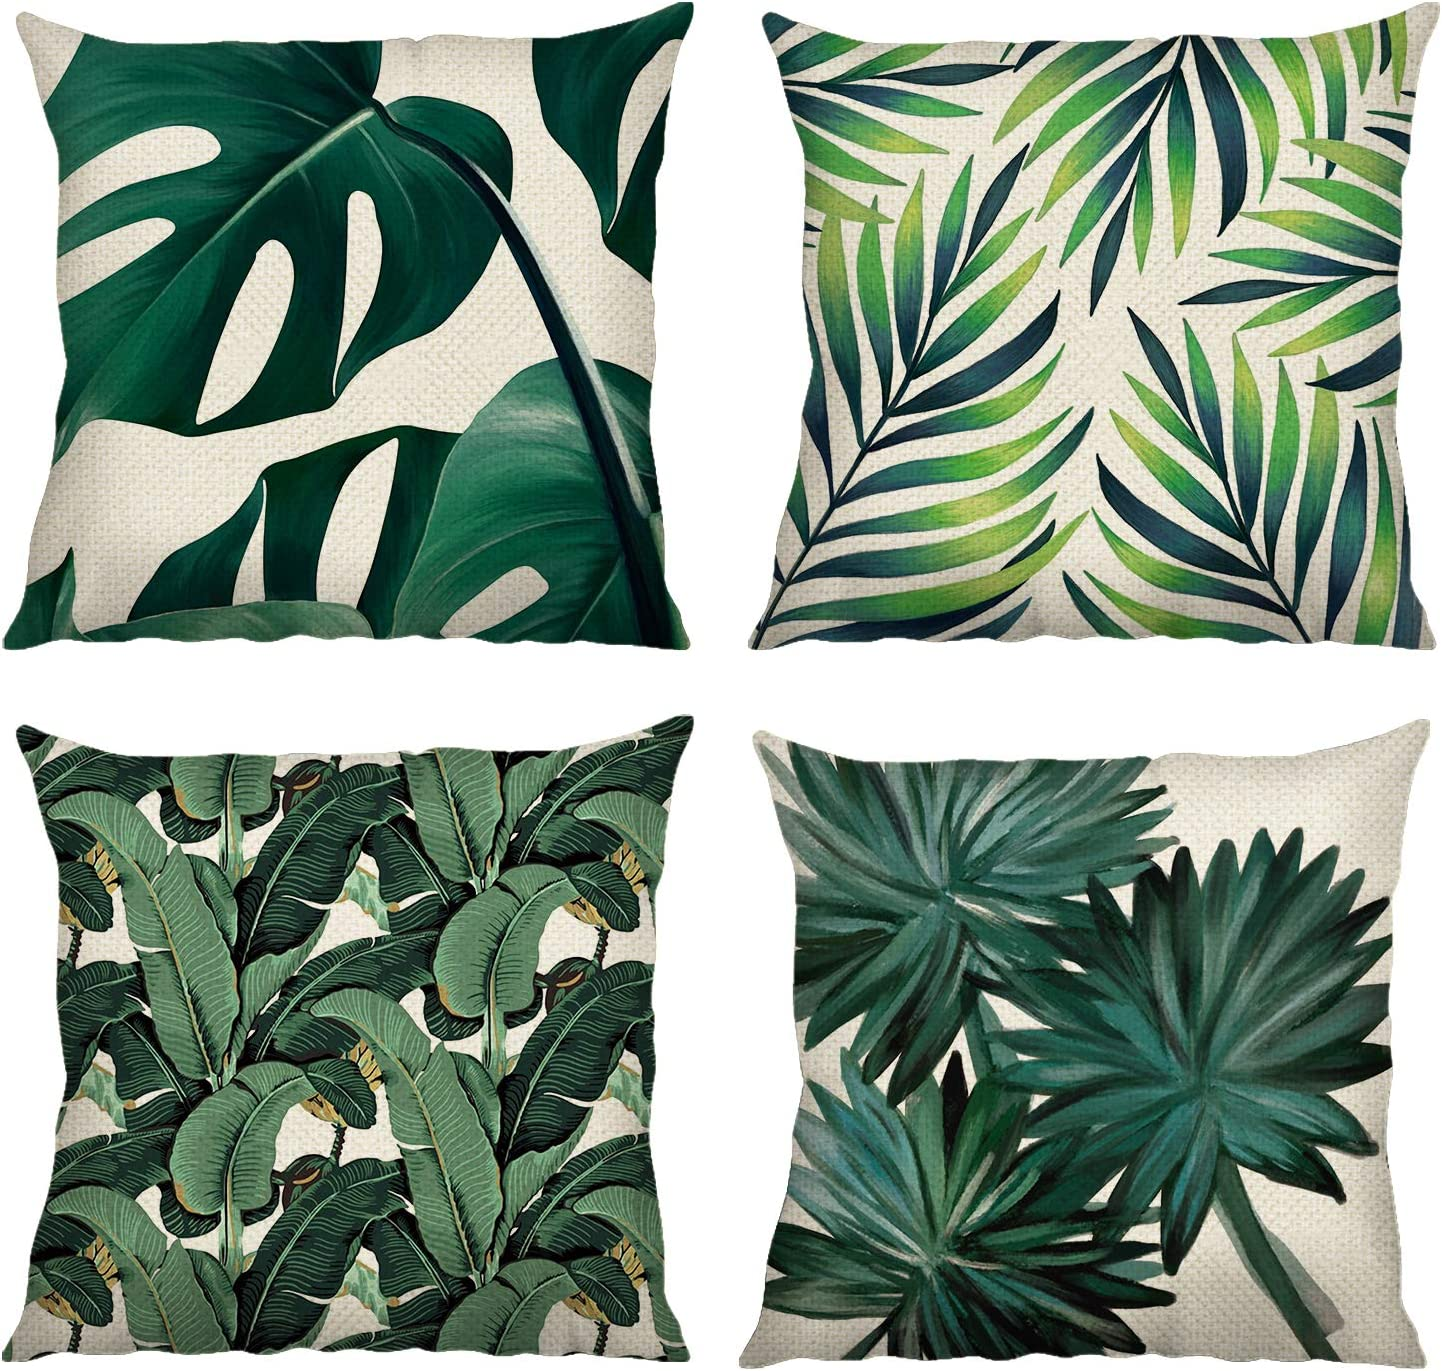 Amazon Com Bonhause Tropical Leaves Throw Pillow Covers 18 X 18 Inch Set Of 4 Green Leaves Decorative Throw Pillow Cases Cotton Linen Square Cushion Covers For Sofa Couch Car Bedroom Home Décor